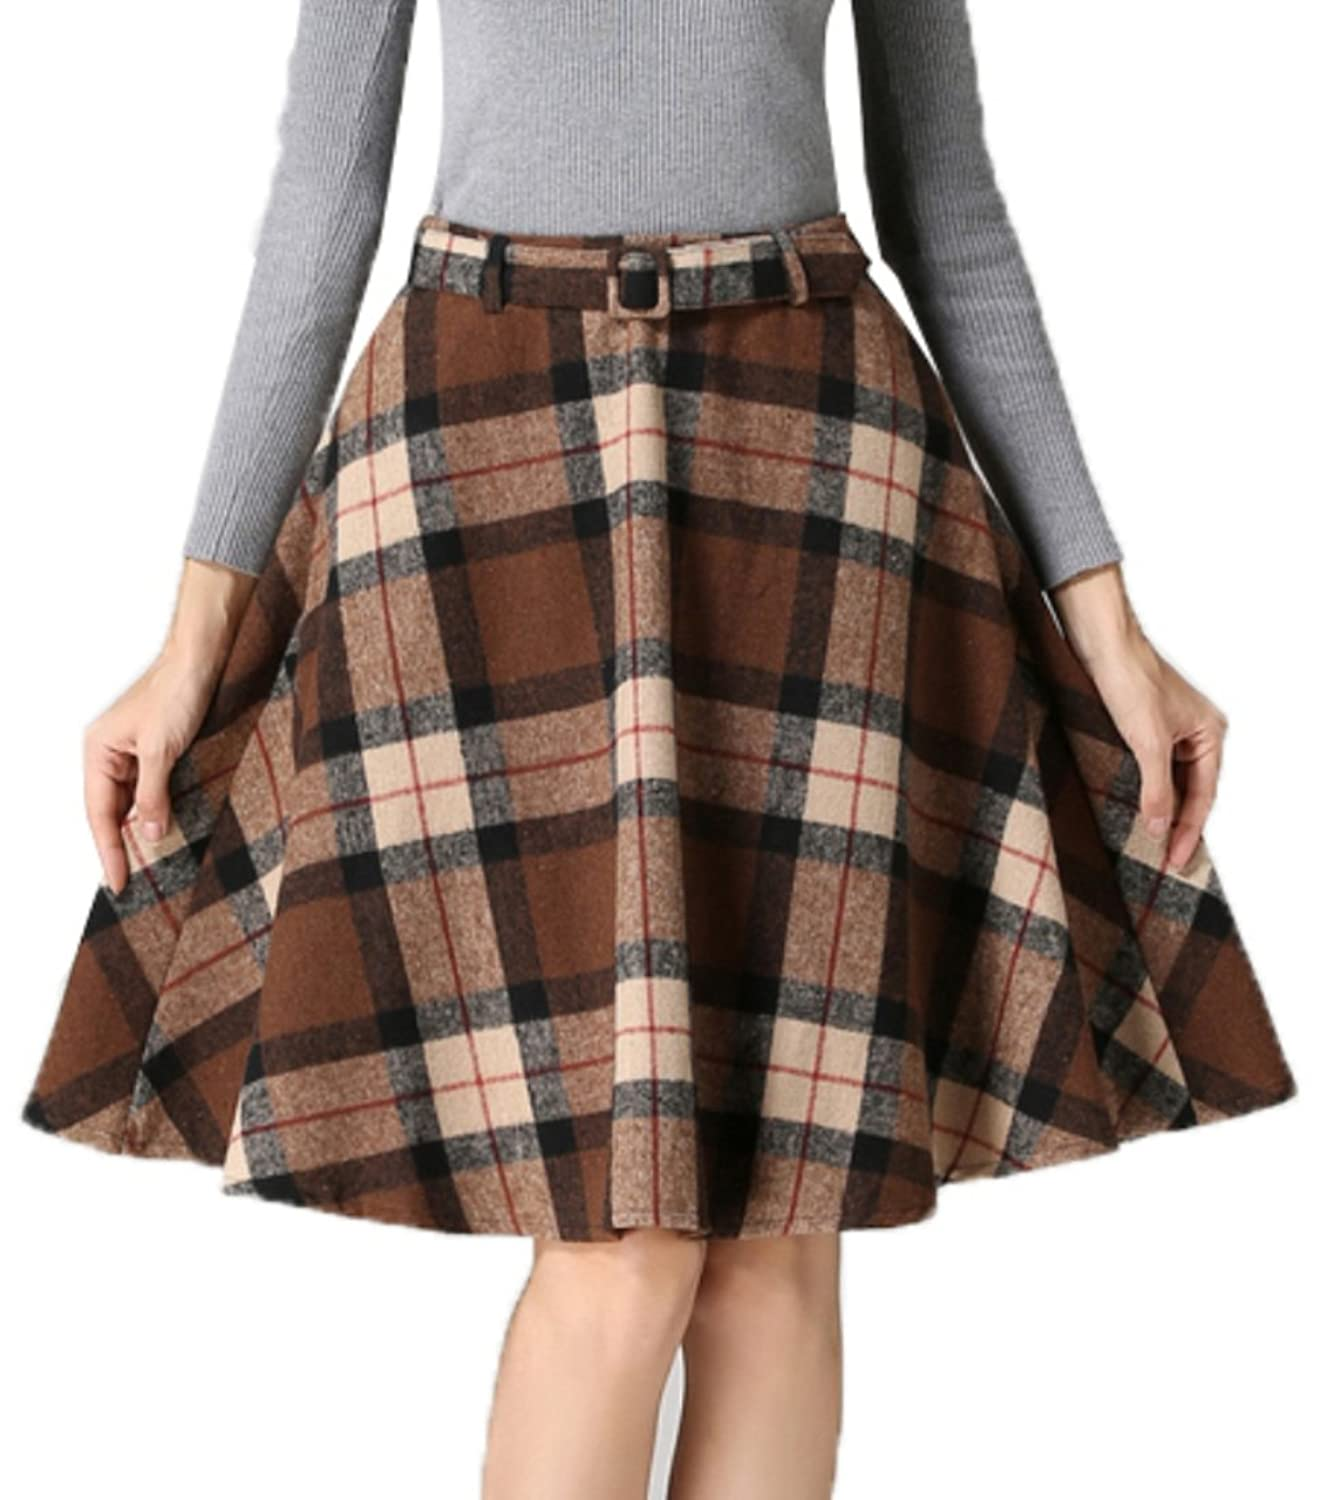 1940s Style Skirts- High Waist Vintage Skirts Sankill Womens High Waisted Wool Check Print Plaid Aline Skirt $21.99 AT vintagedancer.com